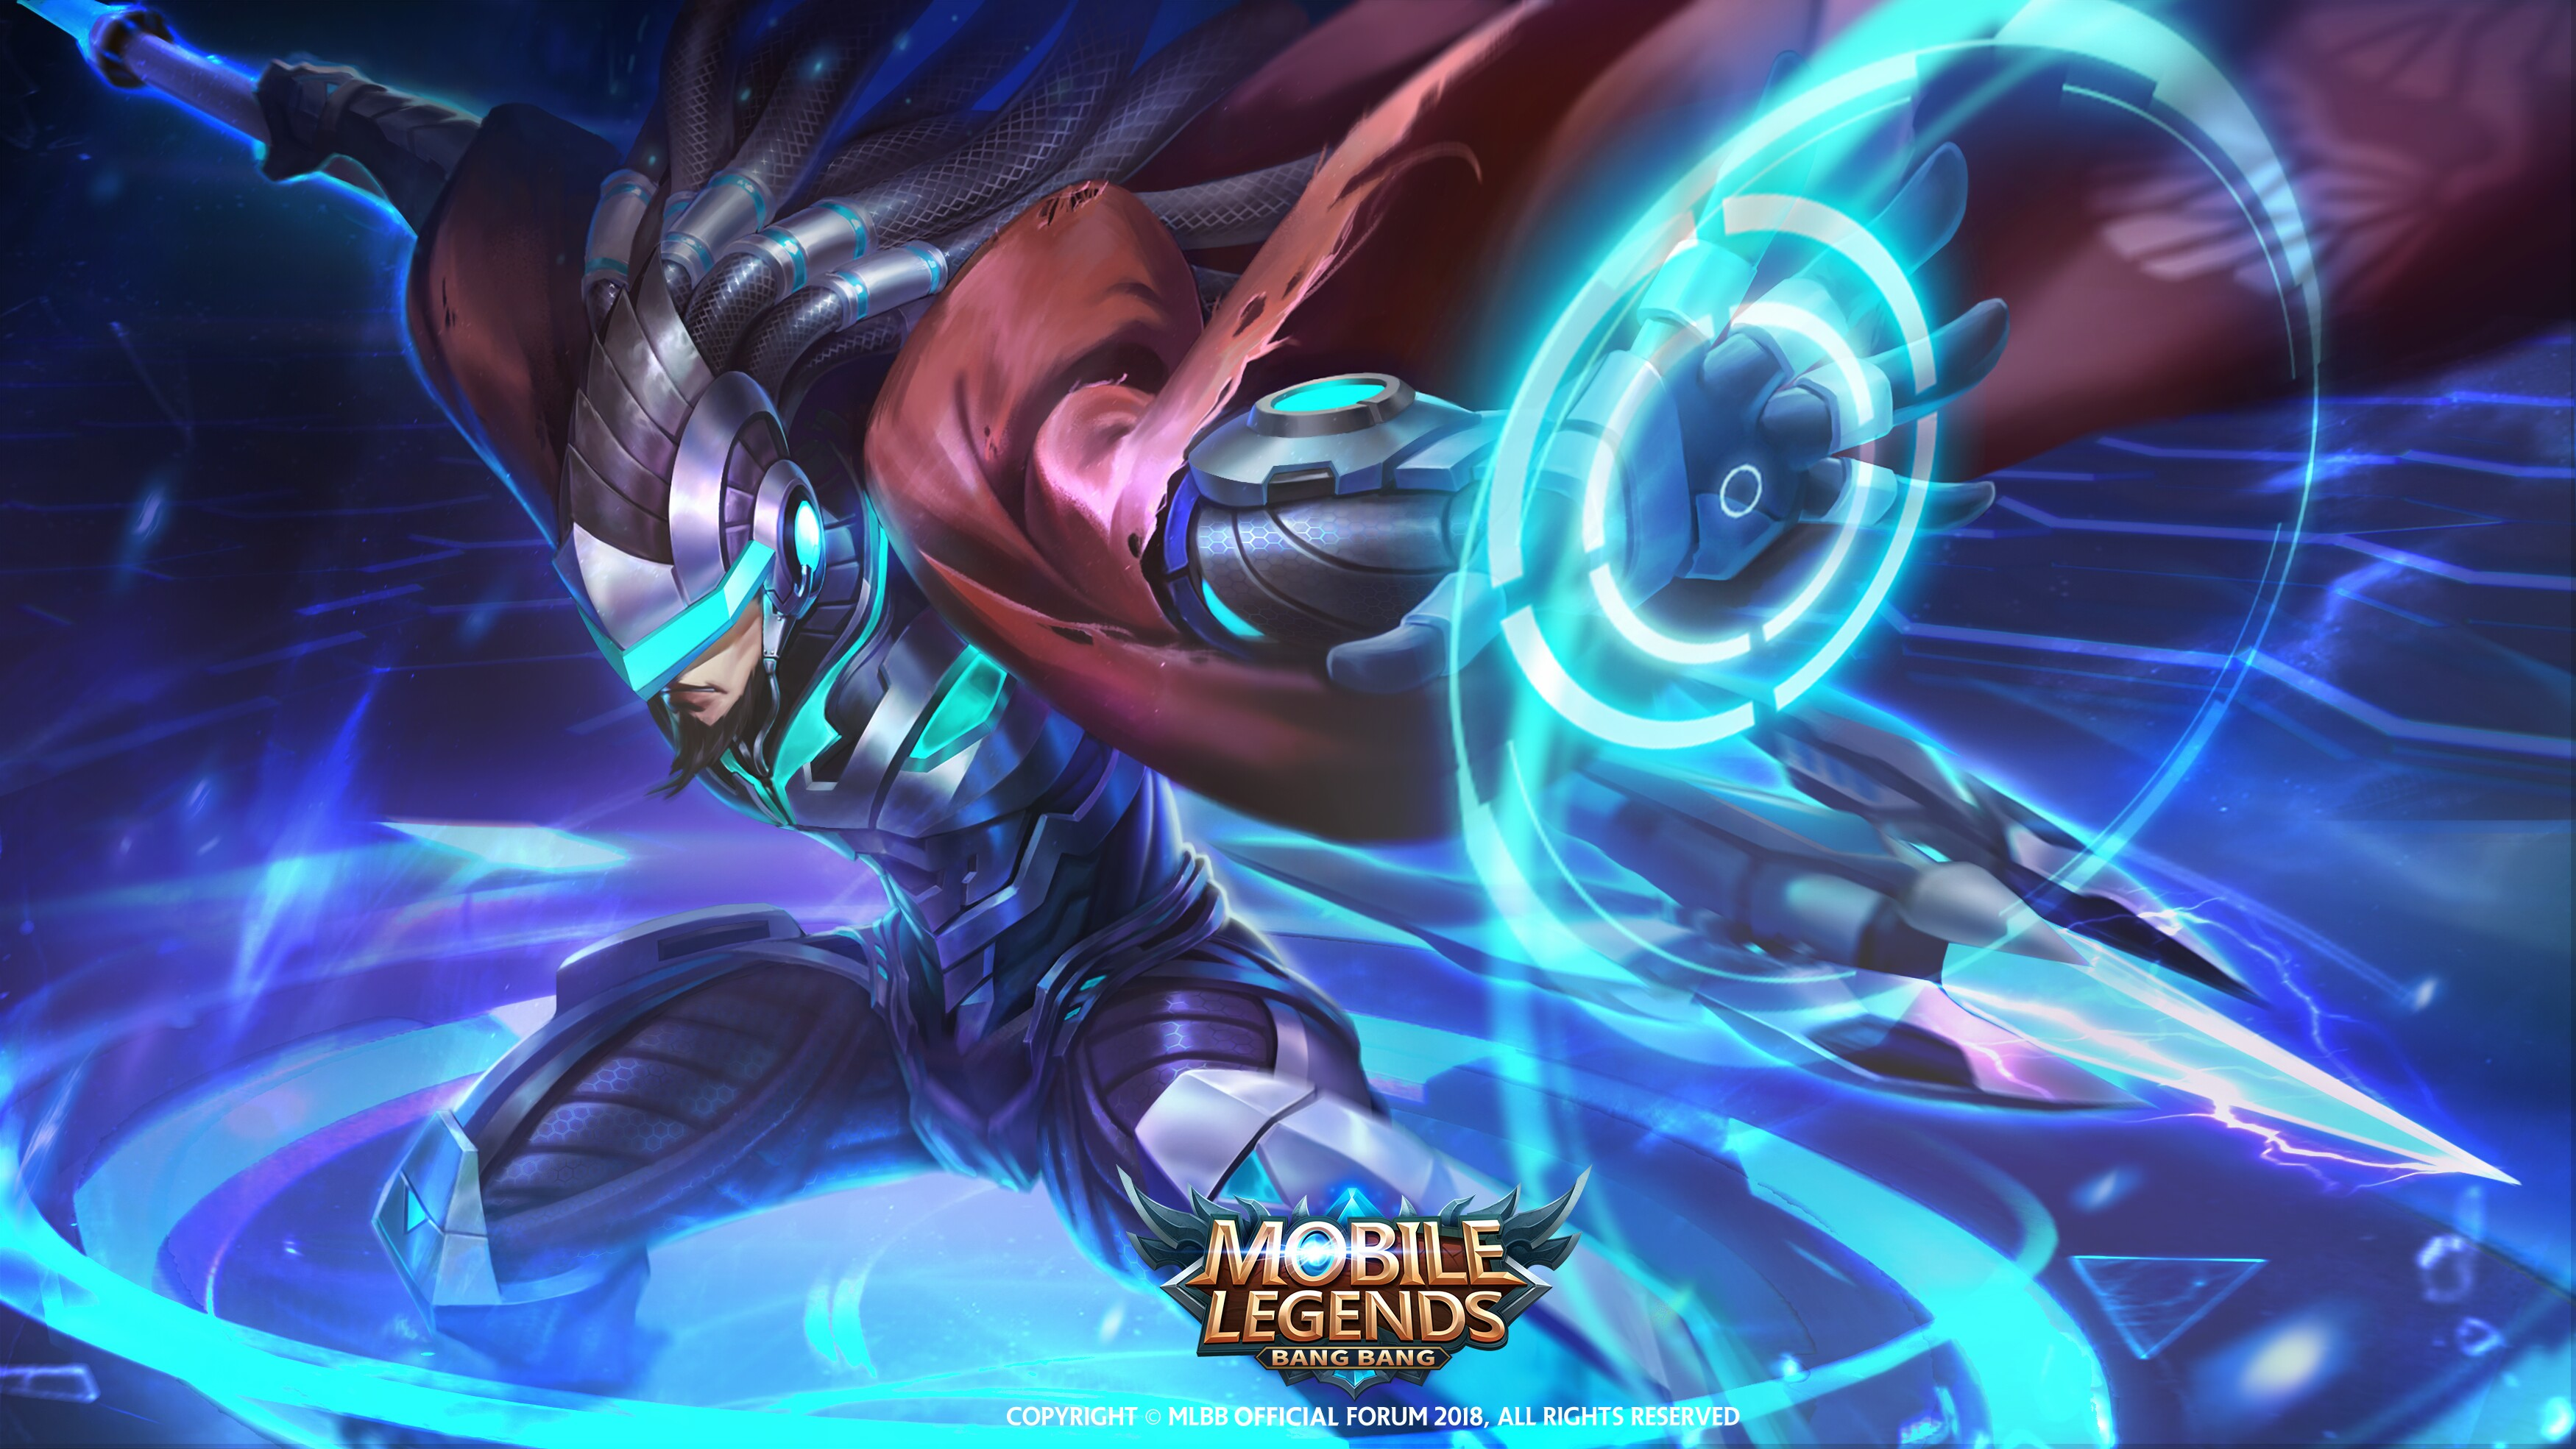 120 Best Mobile Legends Wallpapers Ever Download for Mobile 3500x1969